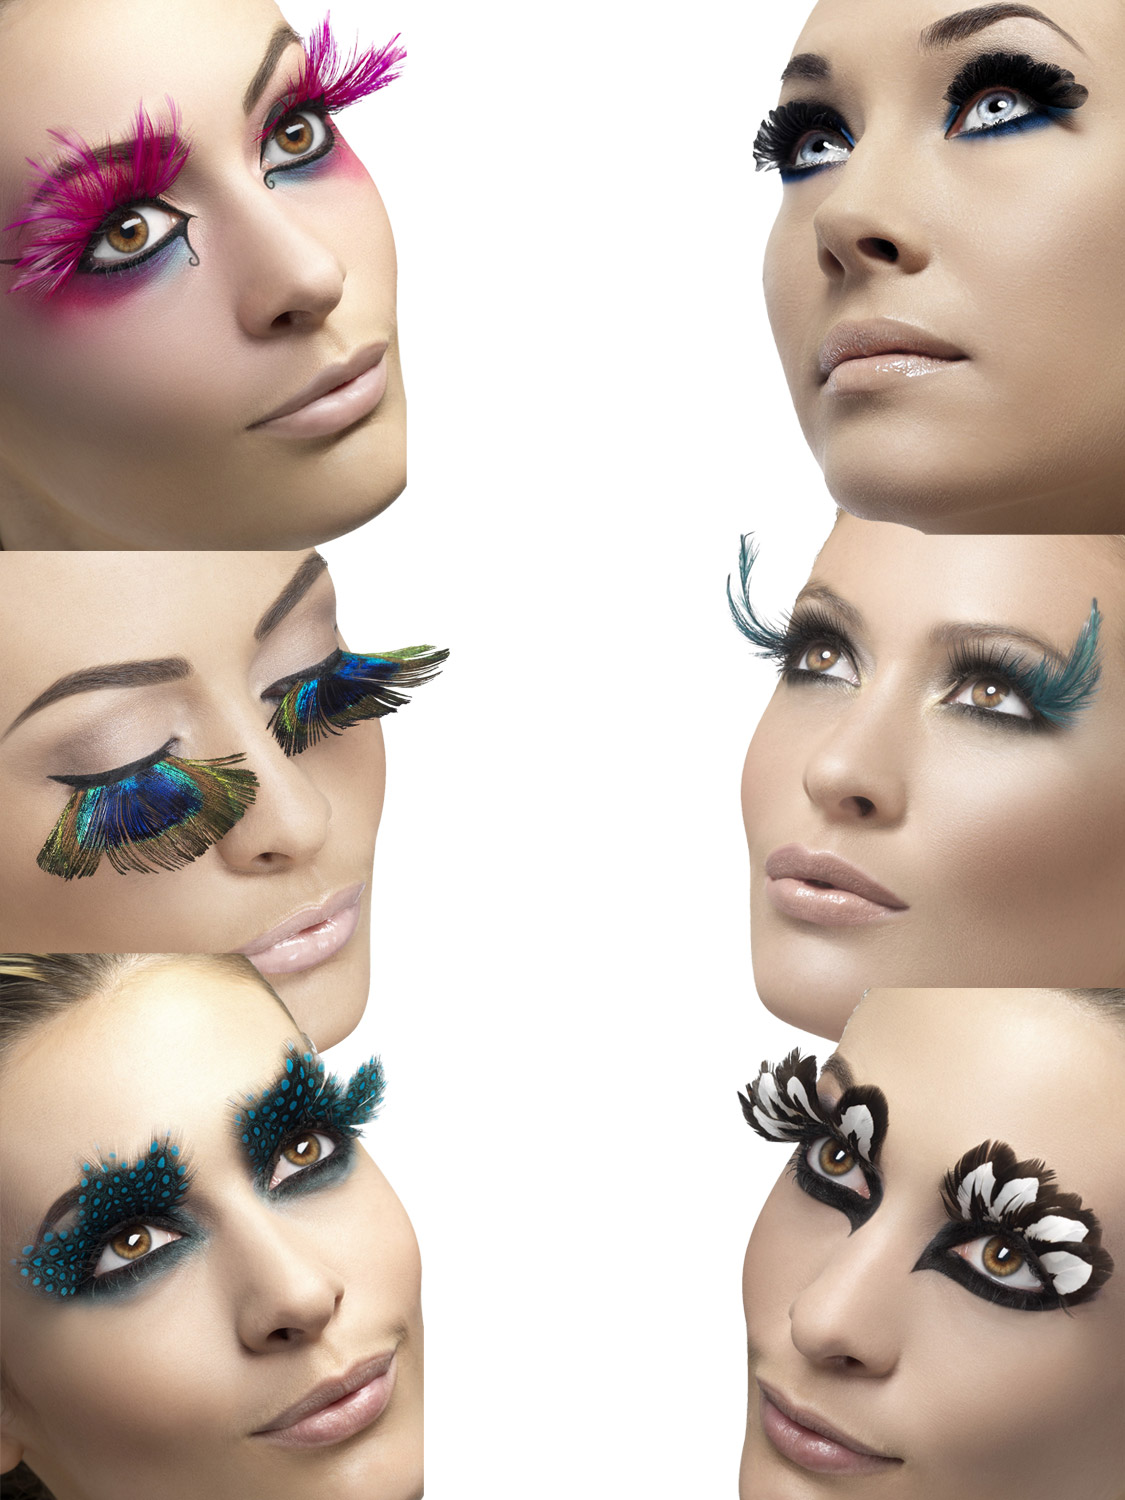 bf280d53017 Details about Ladies Feather Fake False Eyelashes Halloween Fancy Dress  Costume Accessory